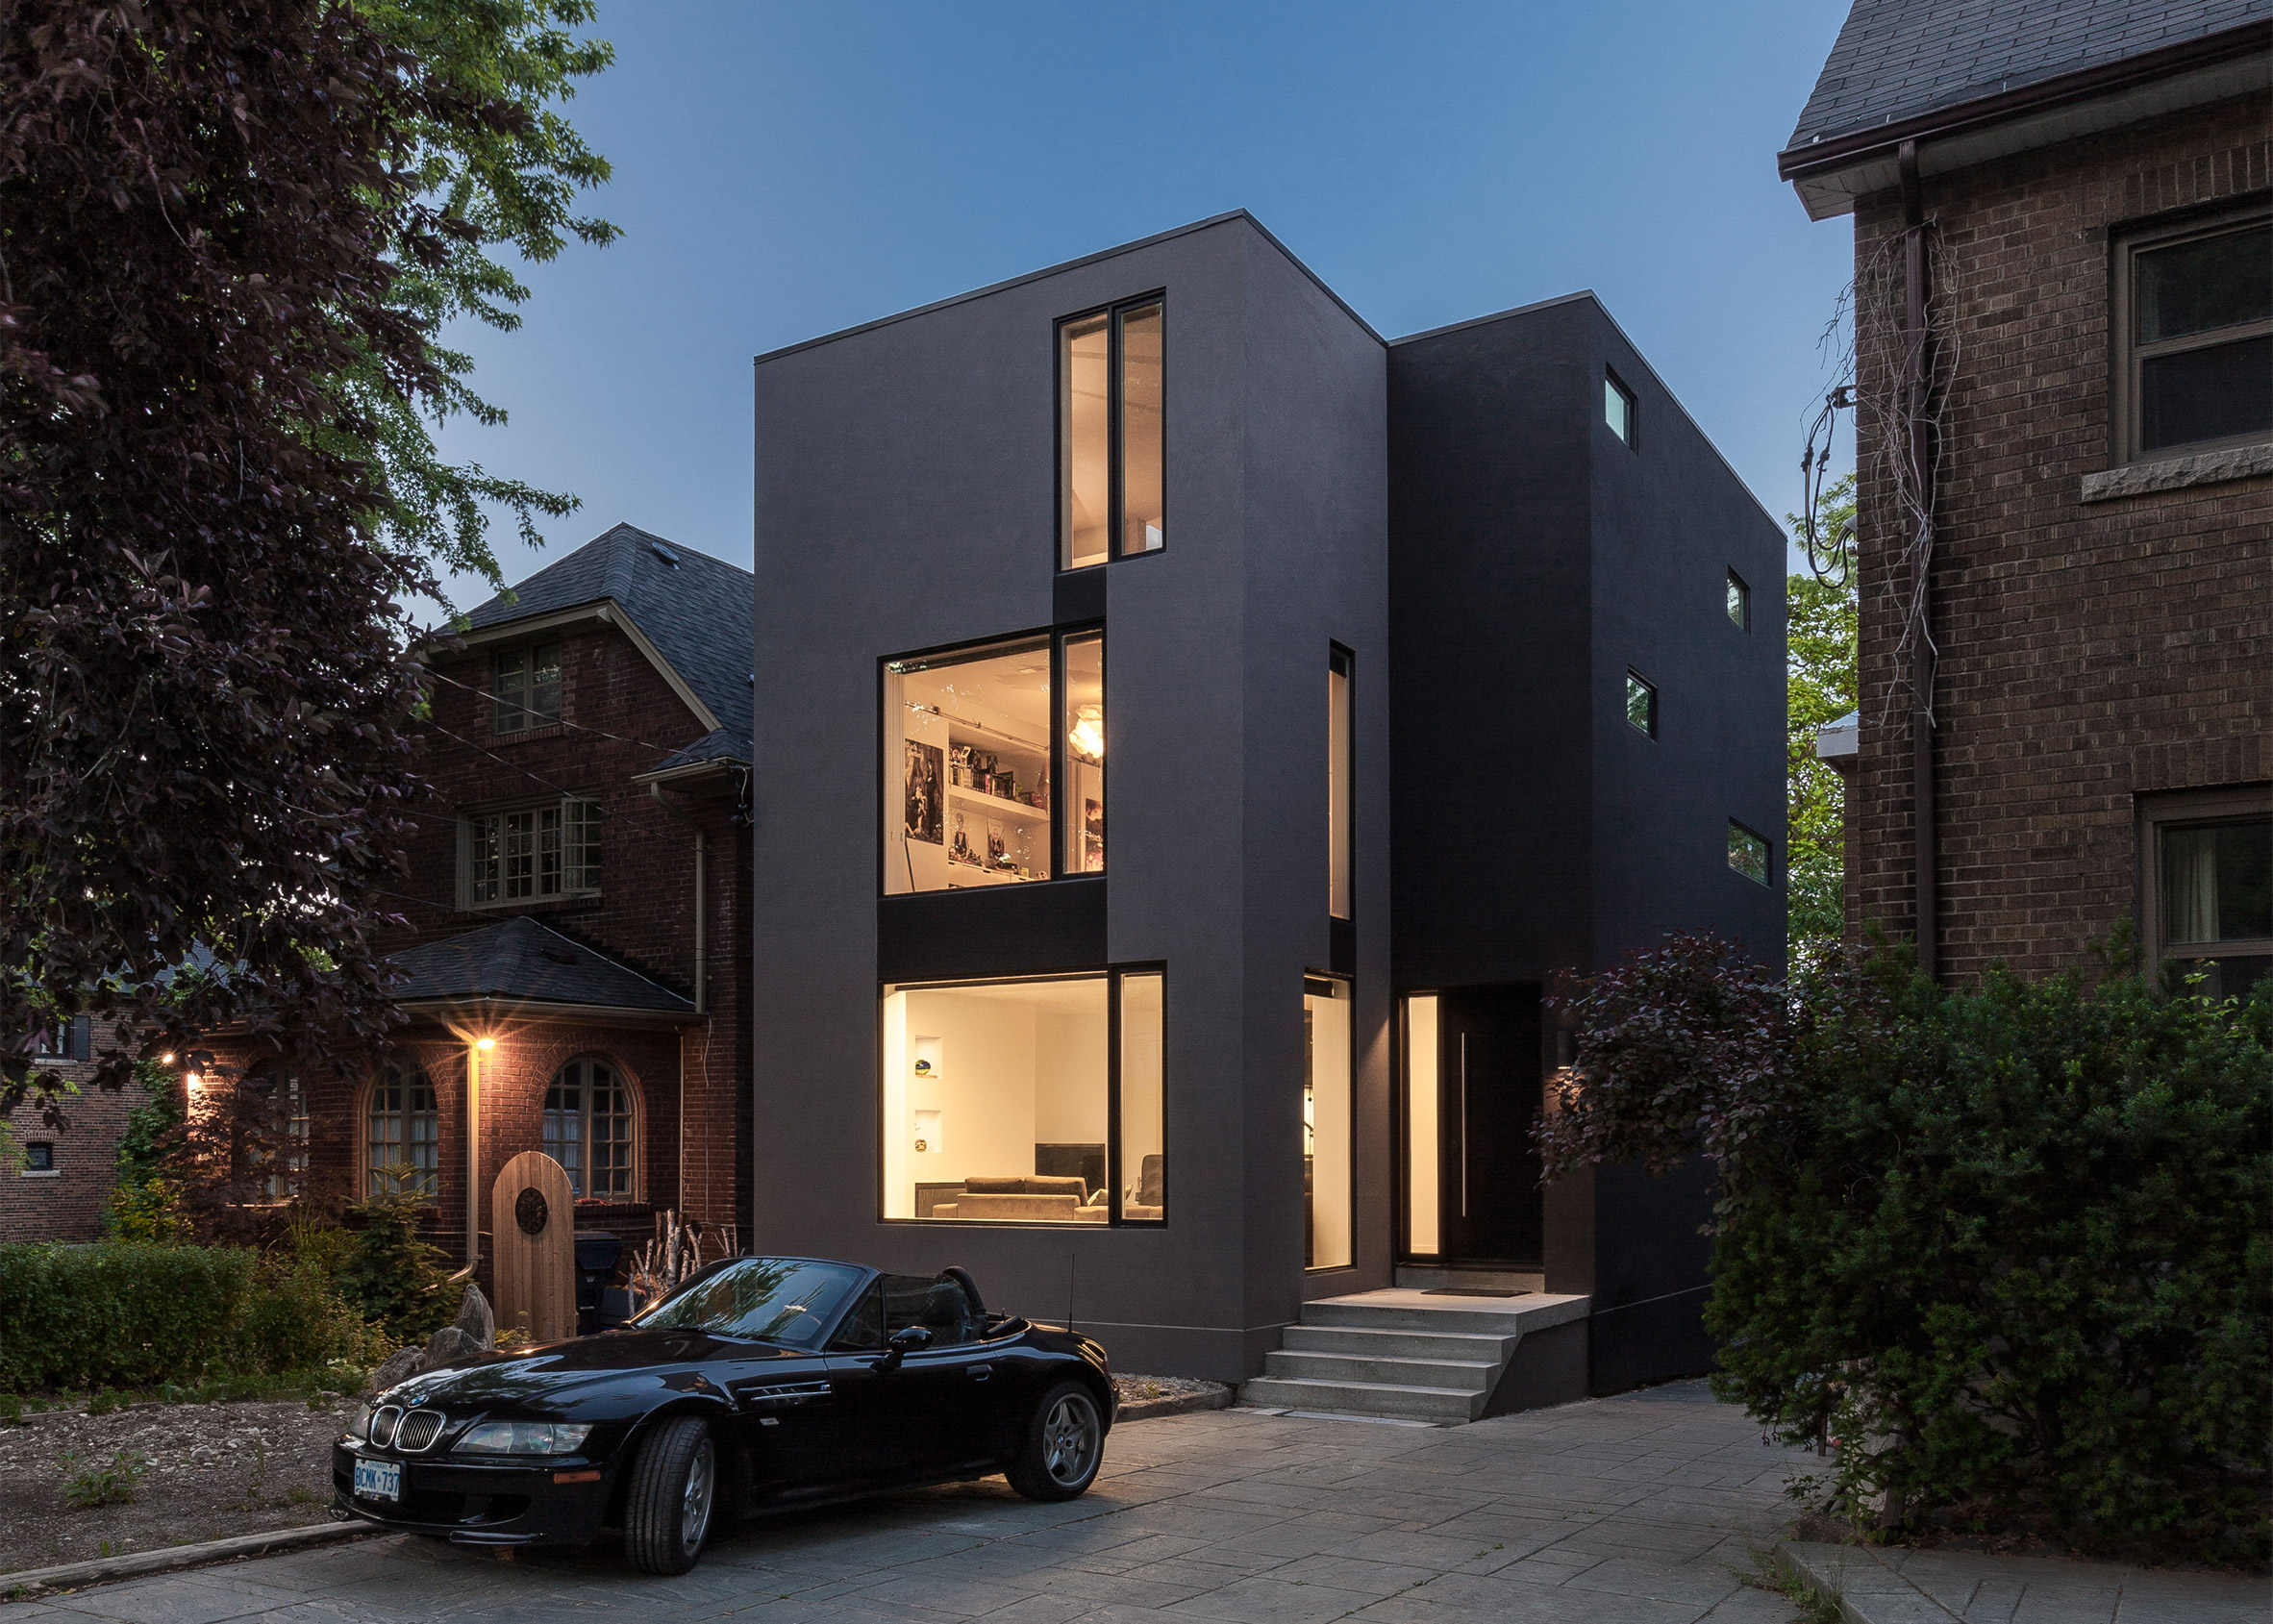 Instar House by RZLBD